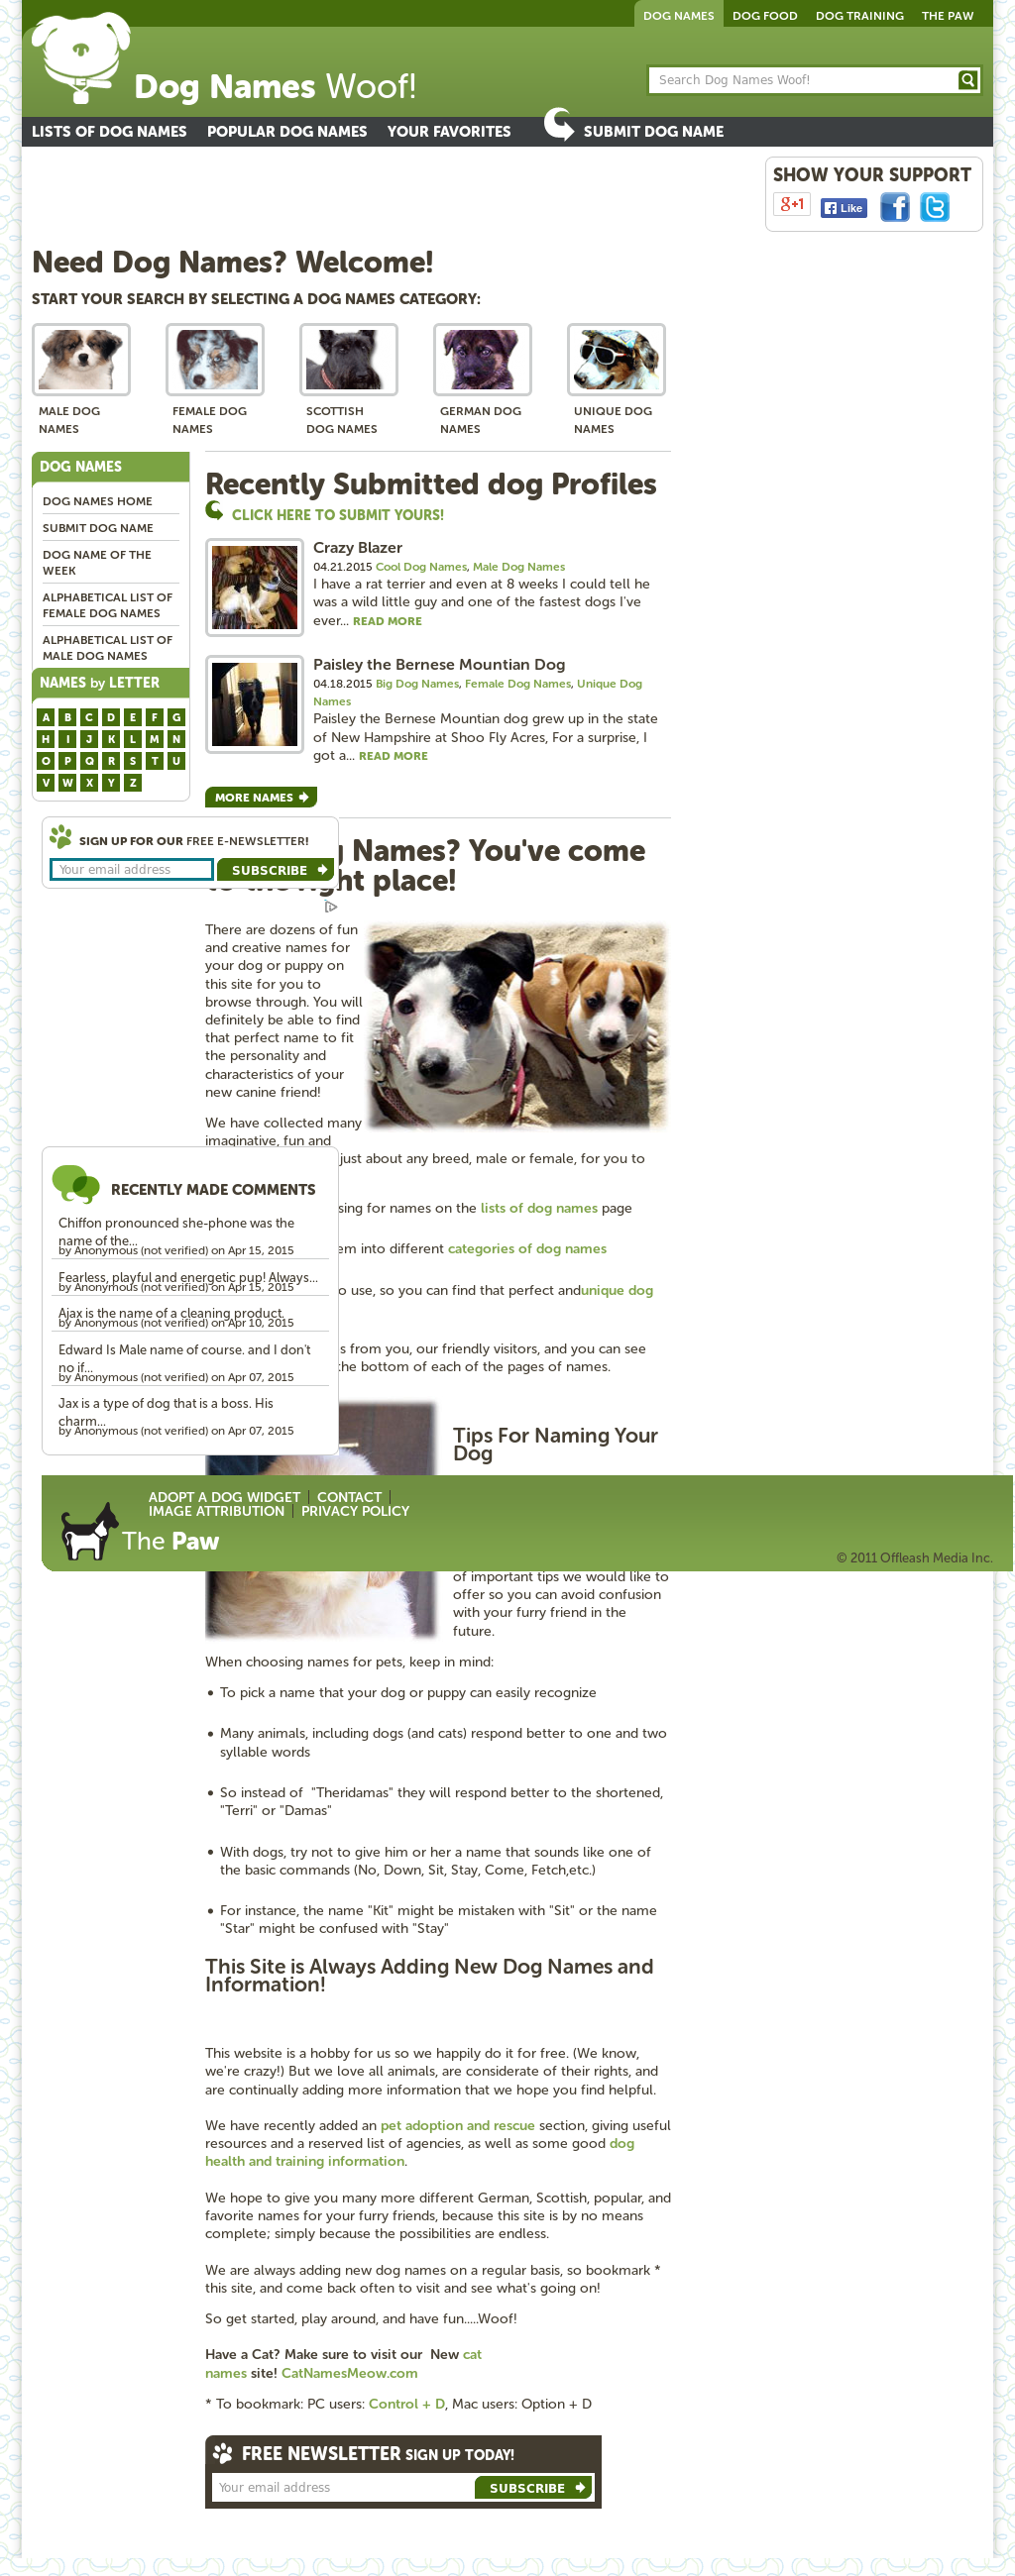 Owler Reports - Dog Names Woof Blog Top 10 Cute Male Puppy